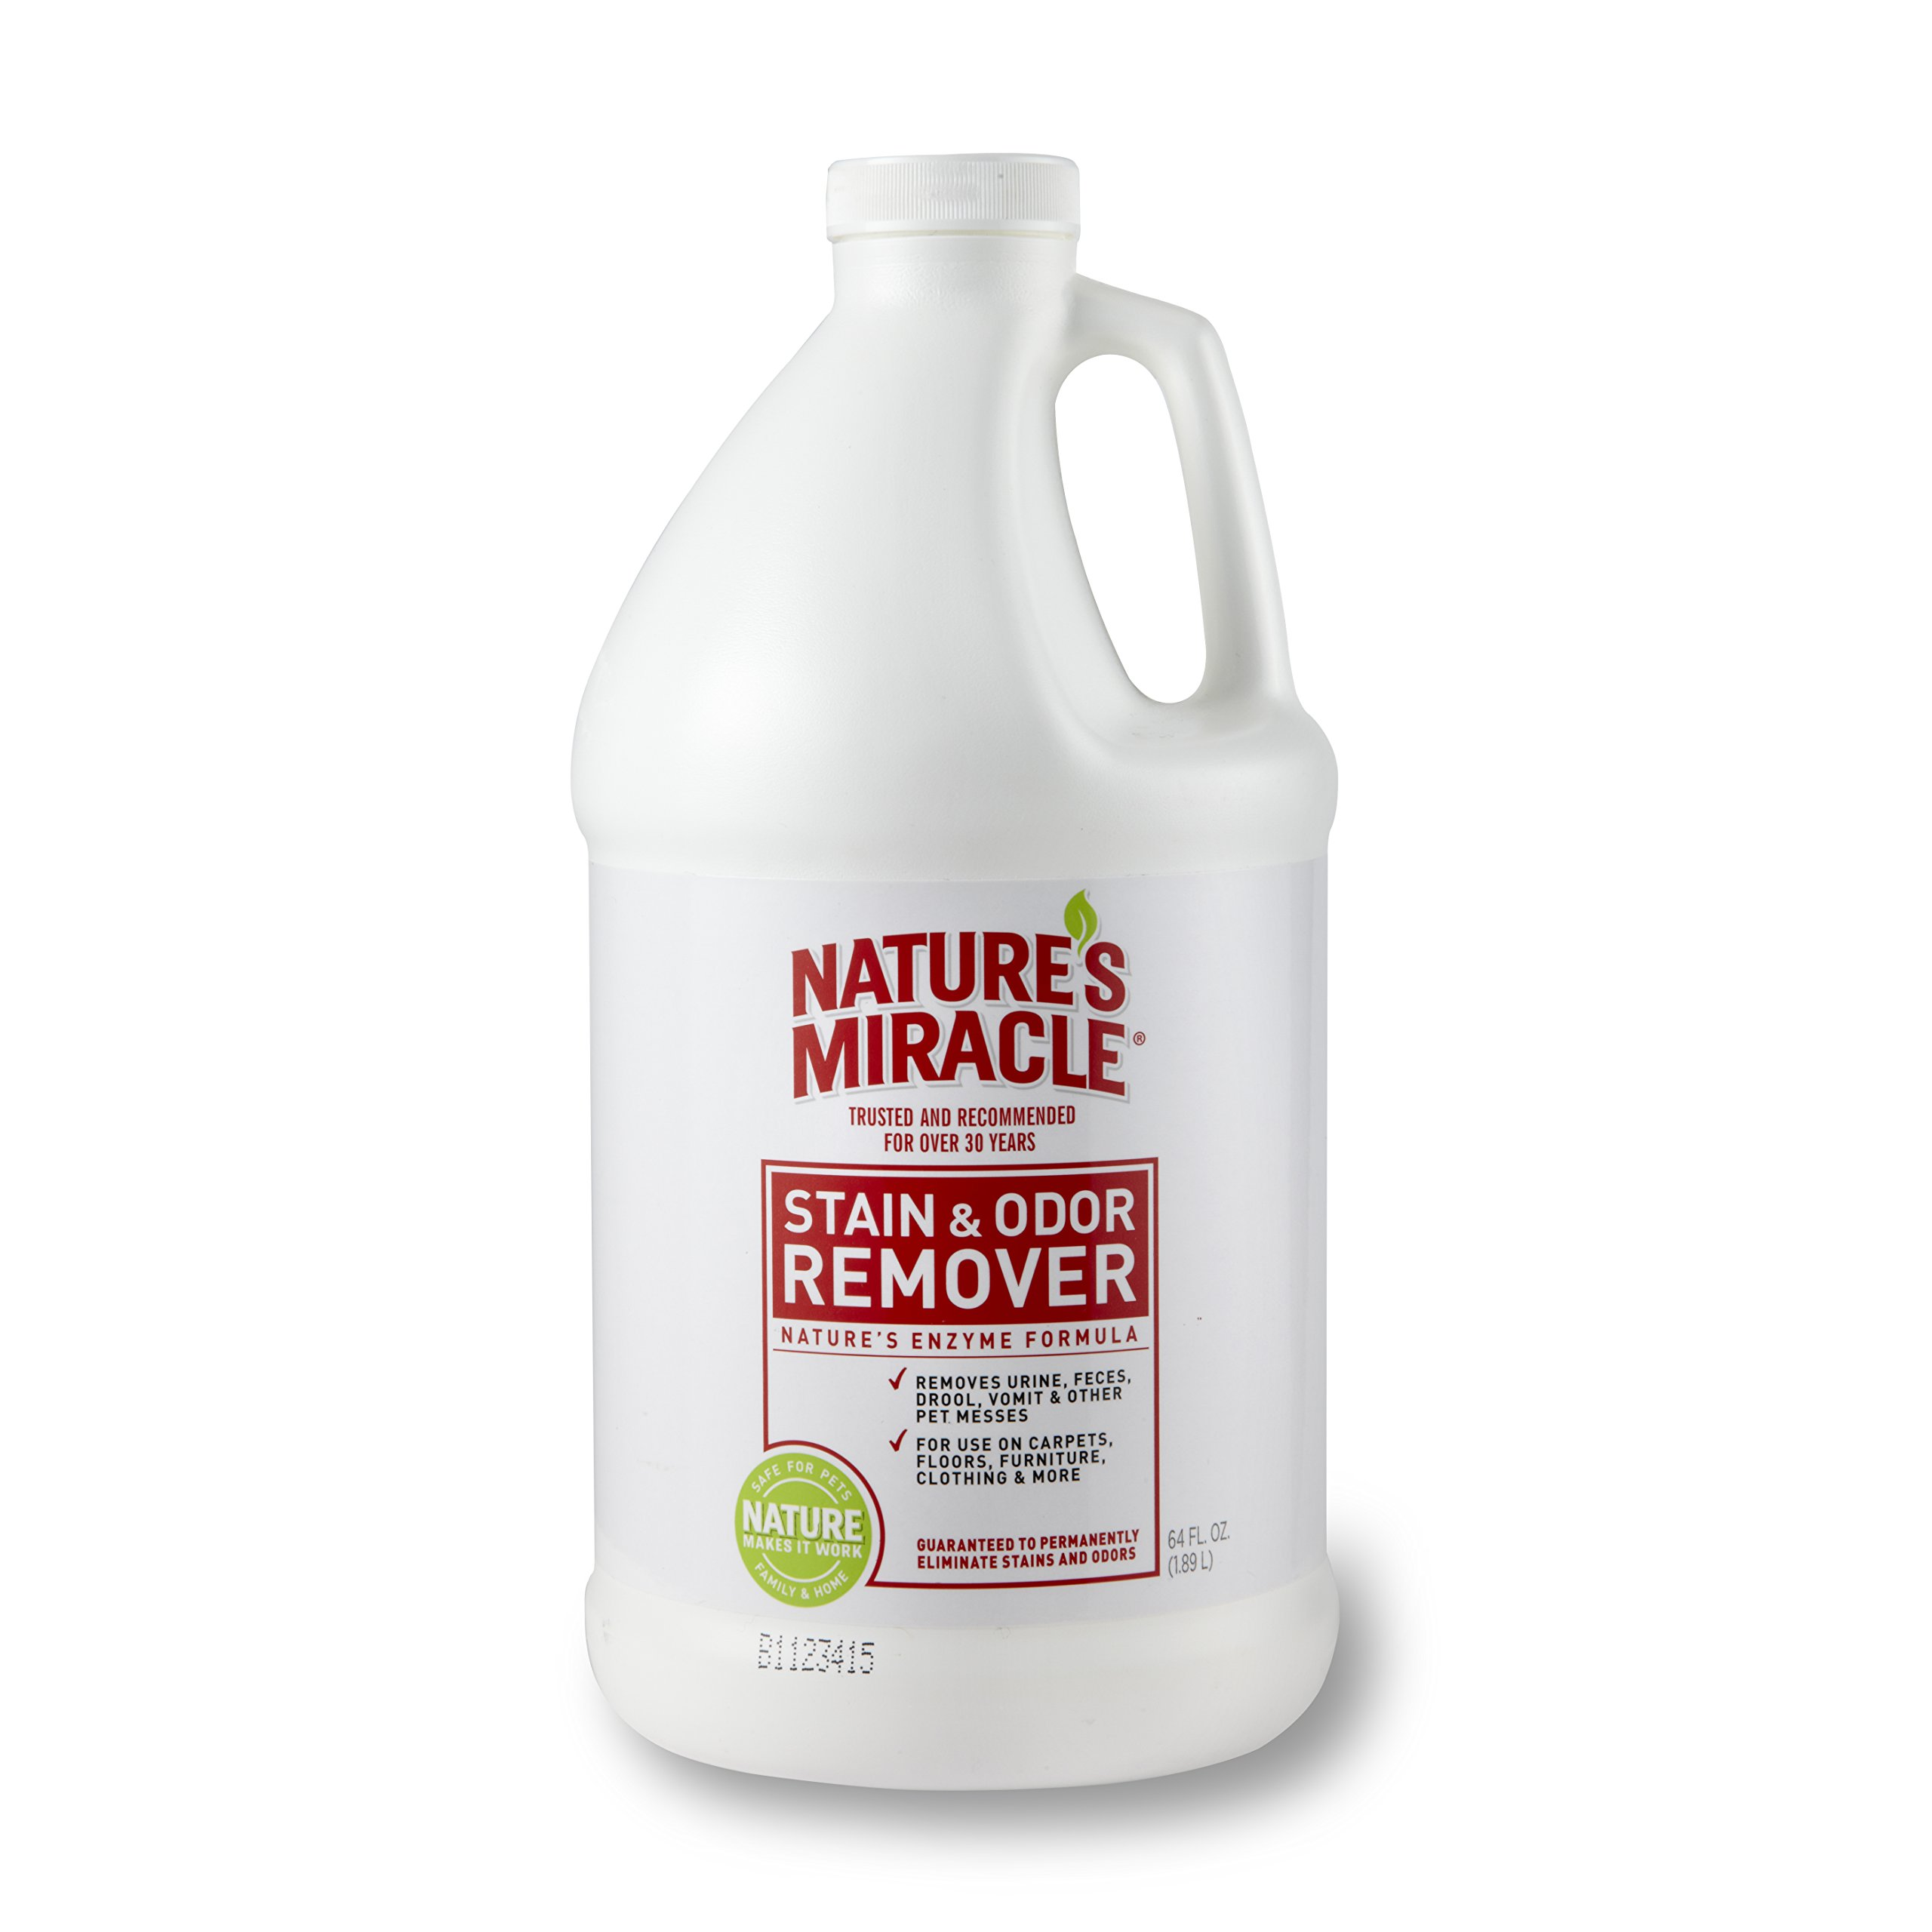 Nature's Miracle Stain and Odor Remover 64oz (.5 Gallon) by Nature's Miracle